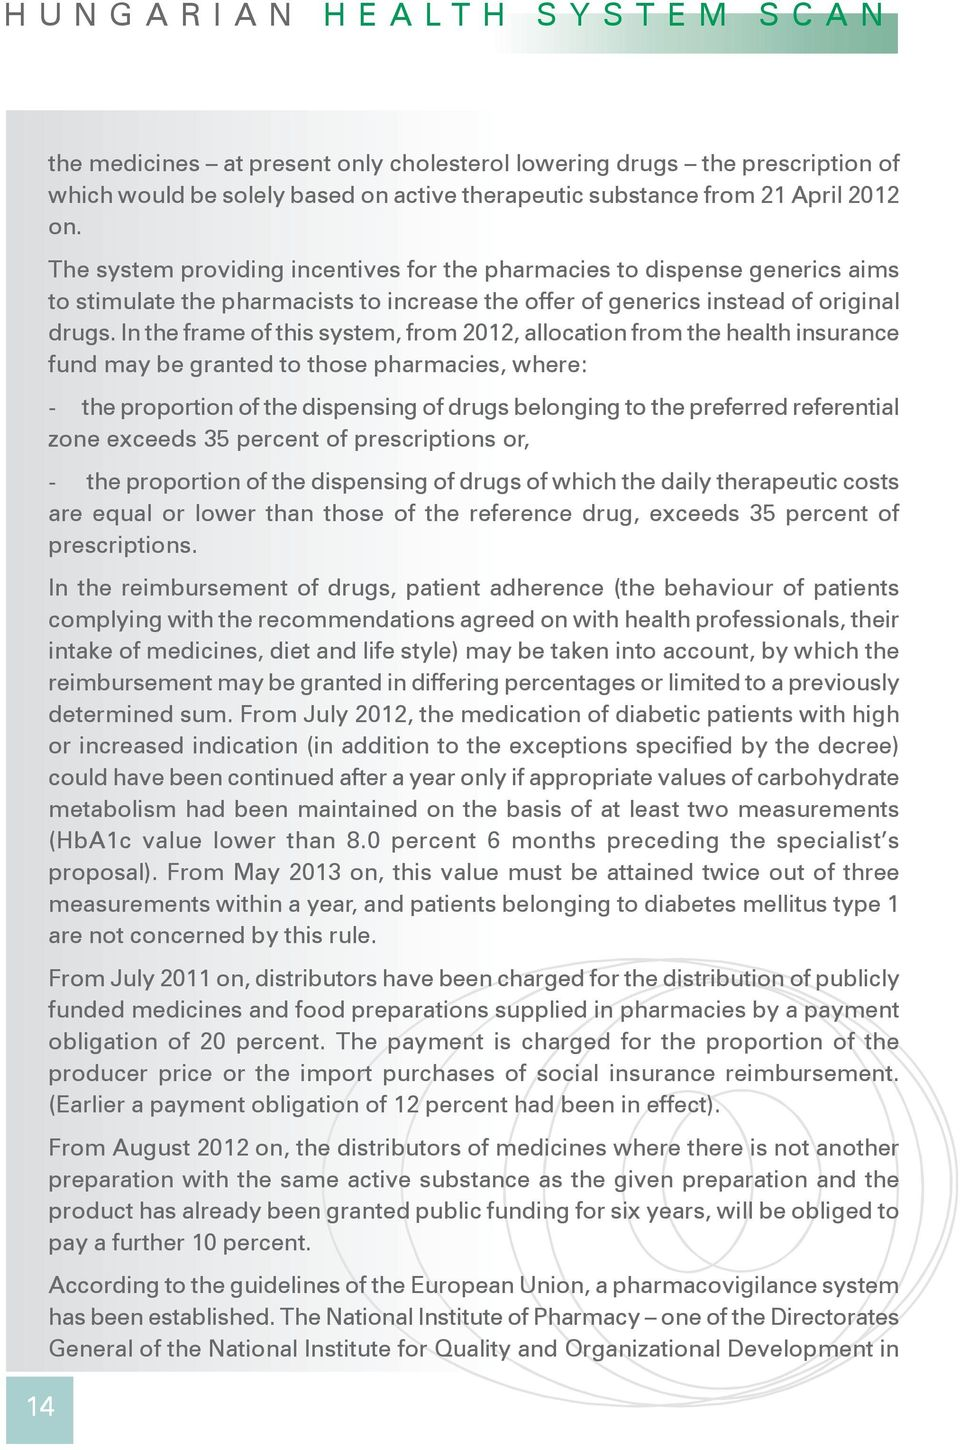 In the frame of this system, from 2012, allocation from the health insurance fund may be granted to those pharmacies, where: - the proportion of the dispensing of drugs belonging to the preferred